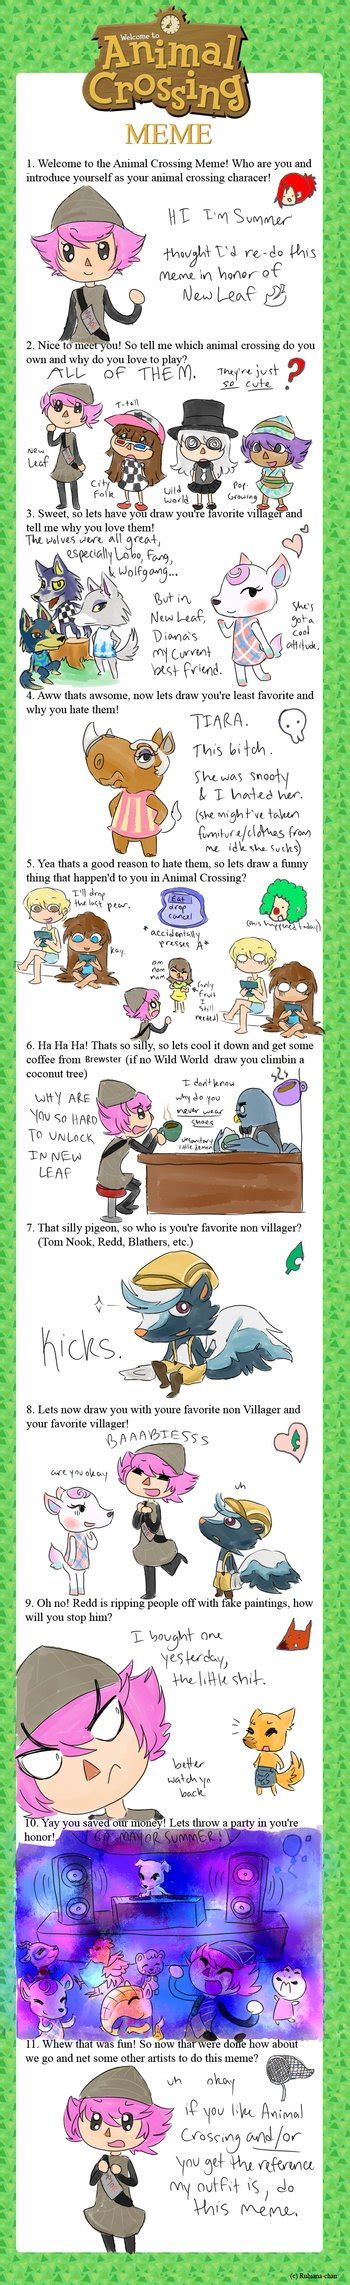 animal crossing meme new leaf by summermon on deviantart